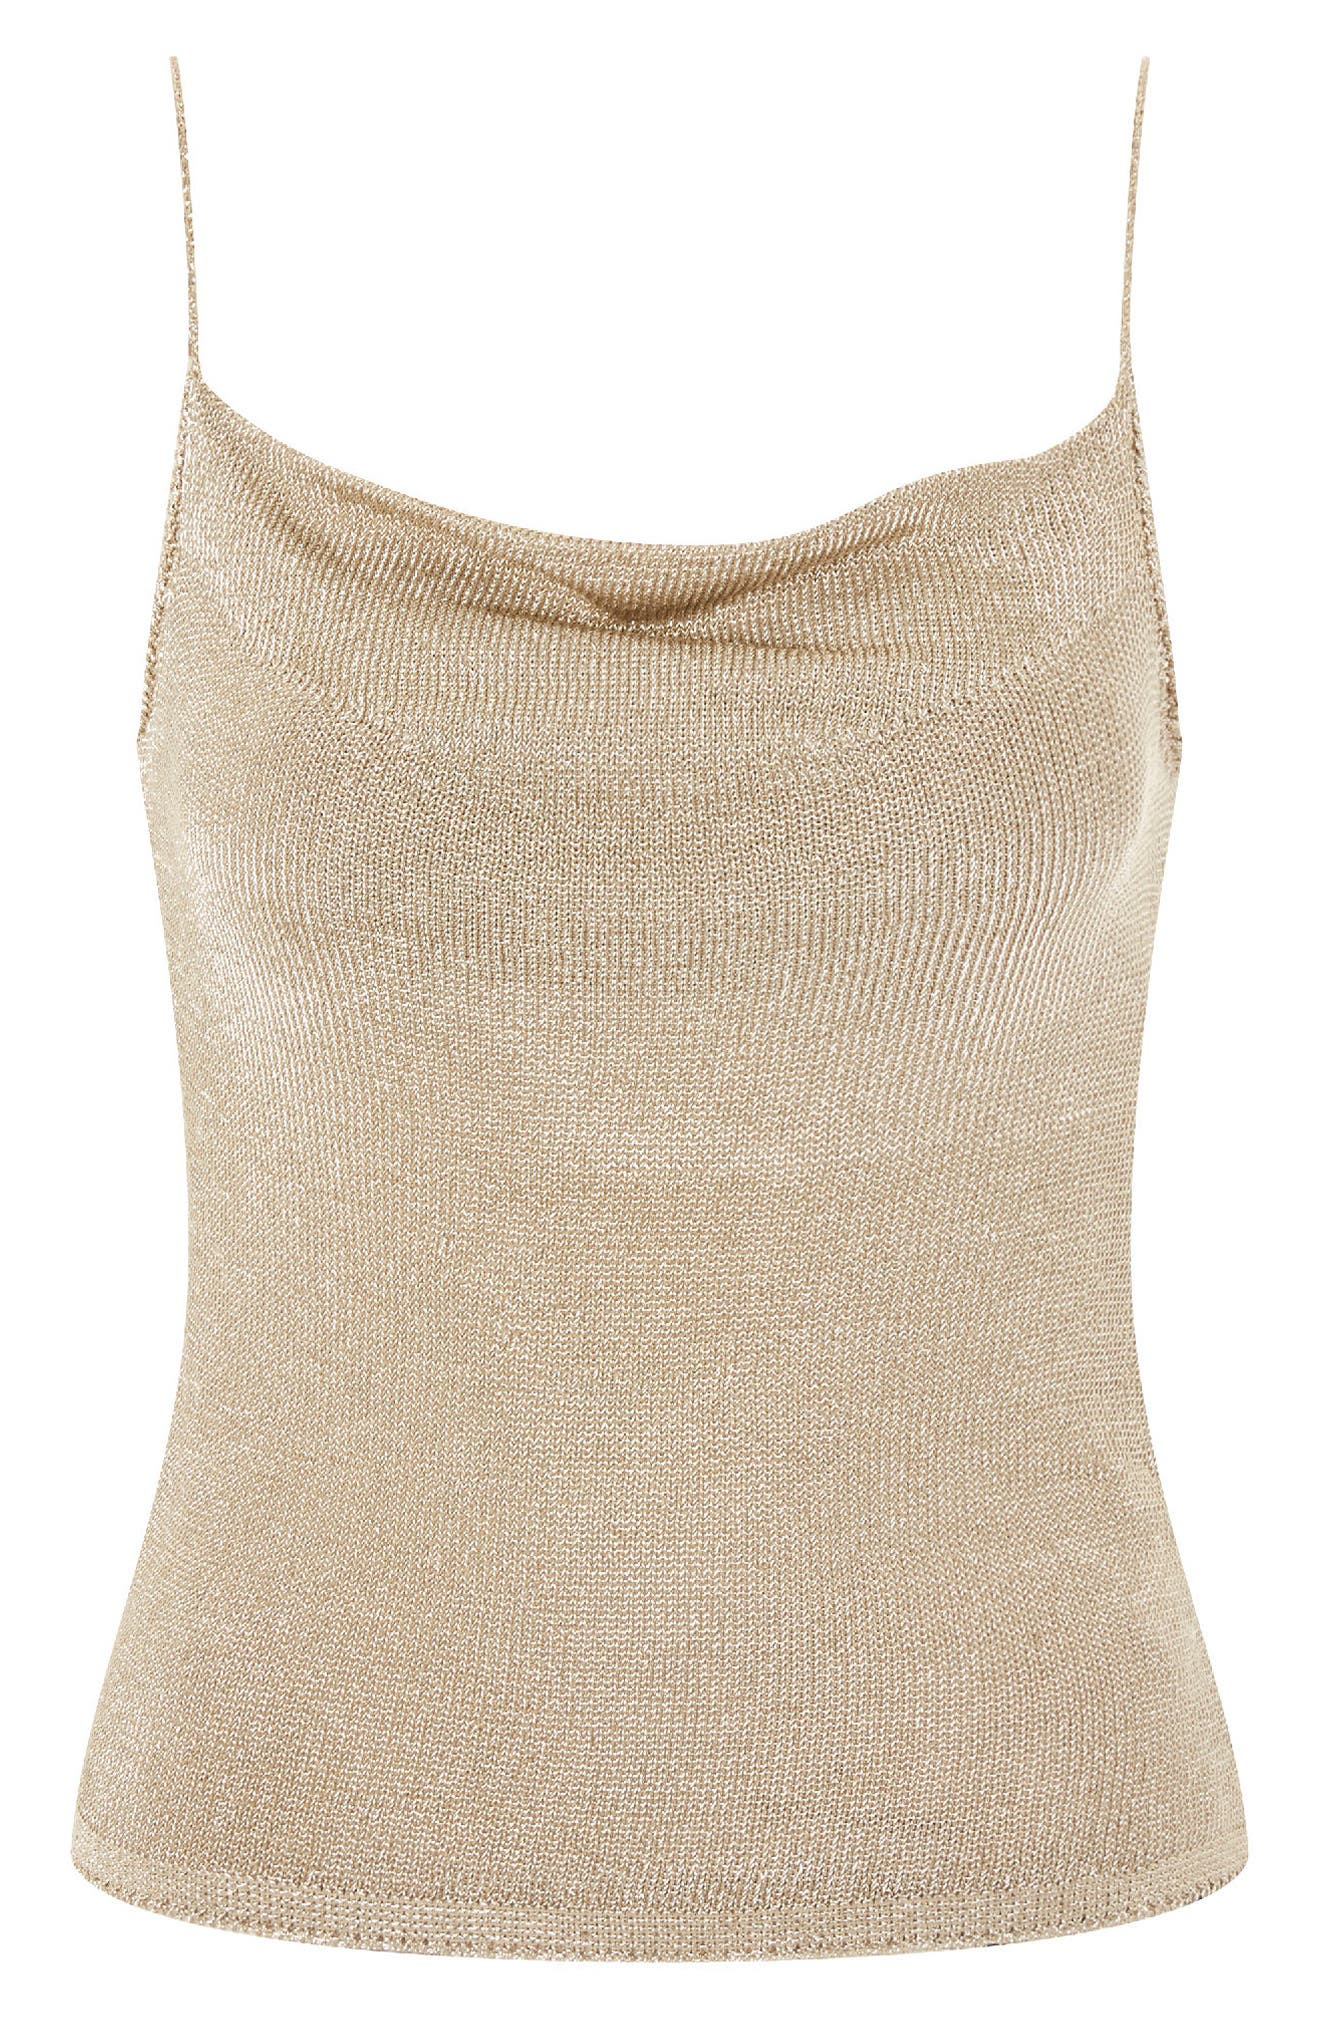 Metal Yarn Cowl Camisole,                             Alternate thumbnail 5, color,                             Gold